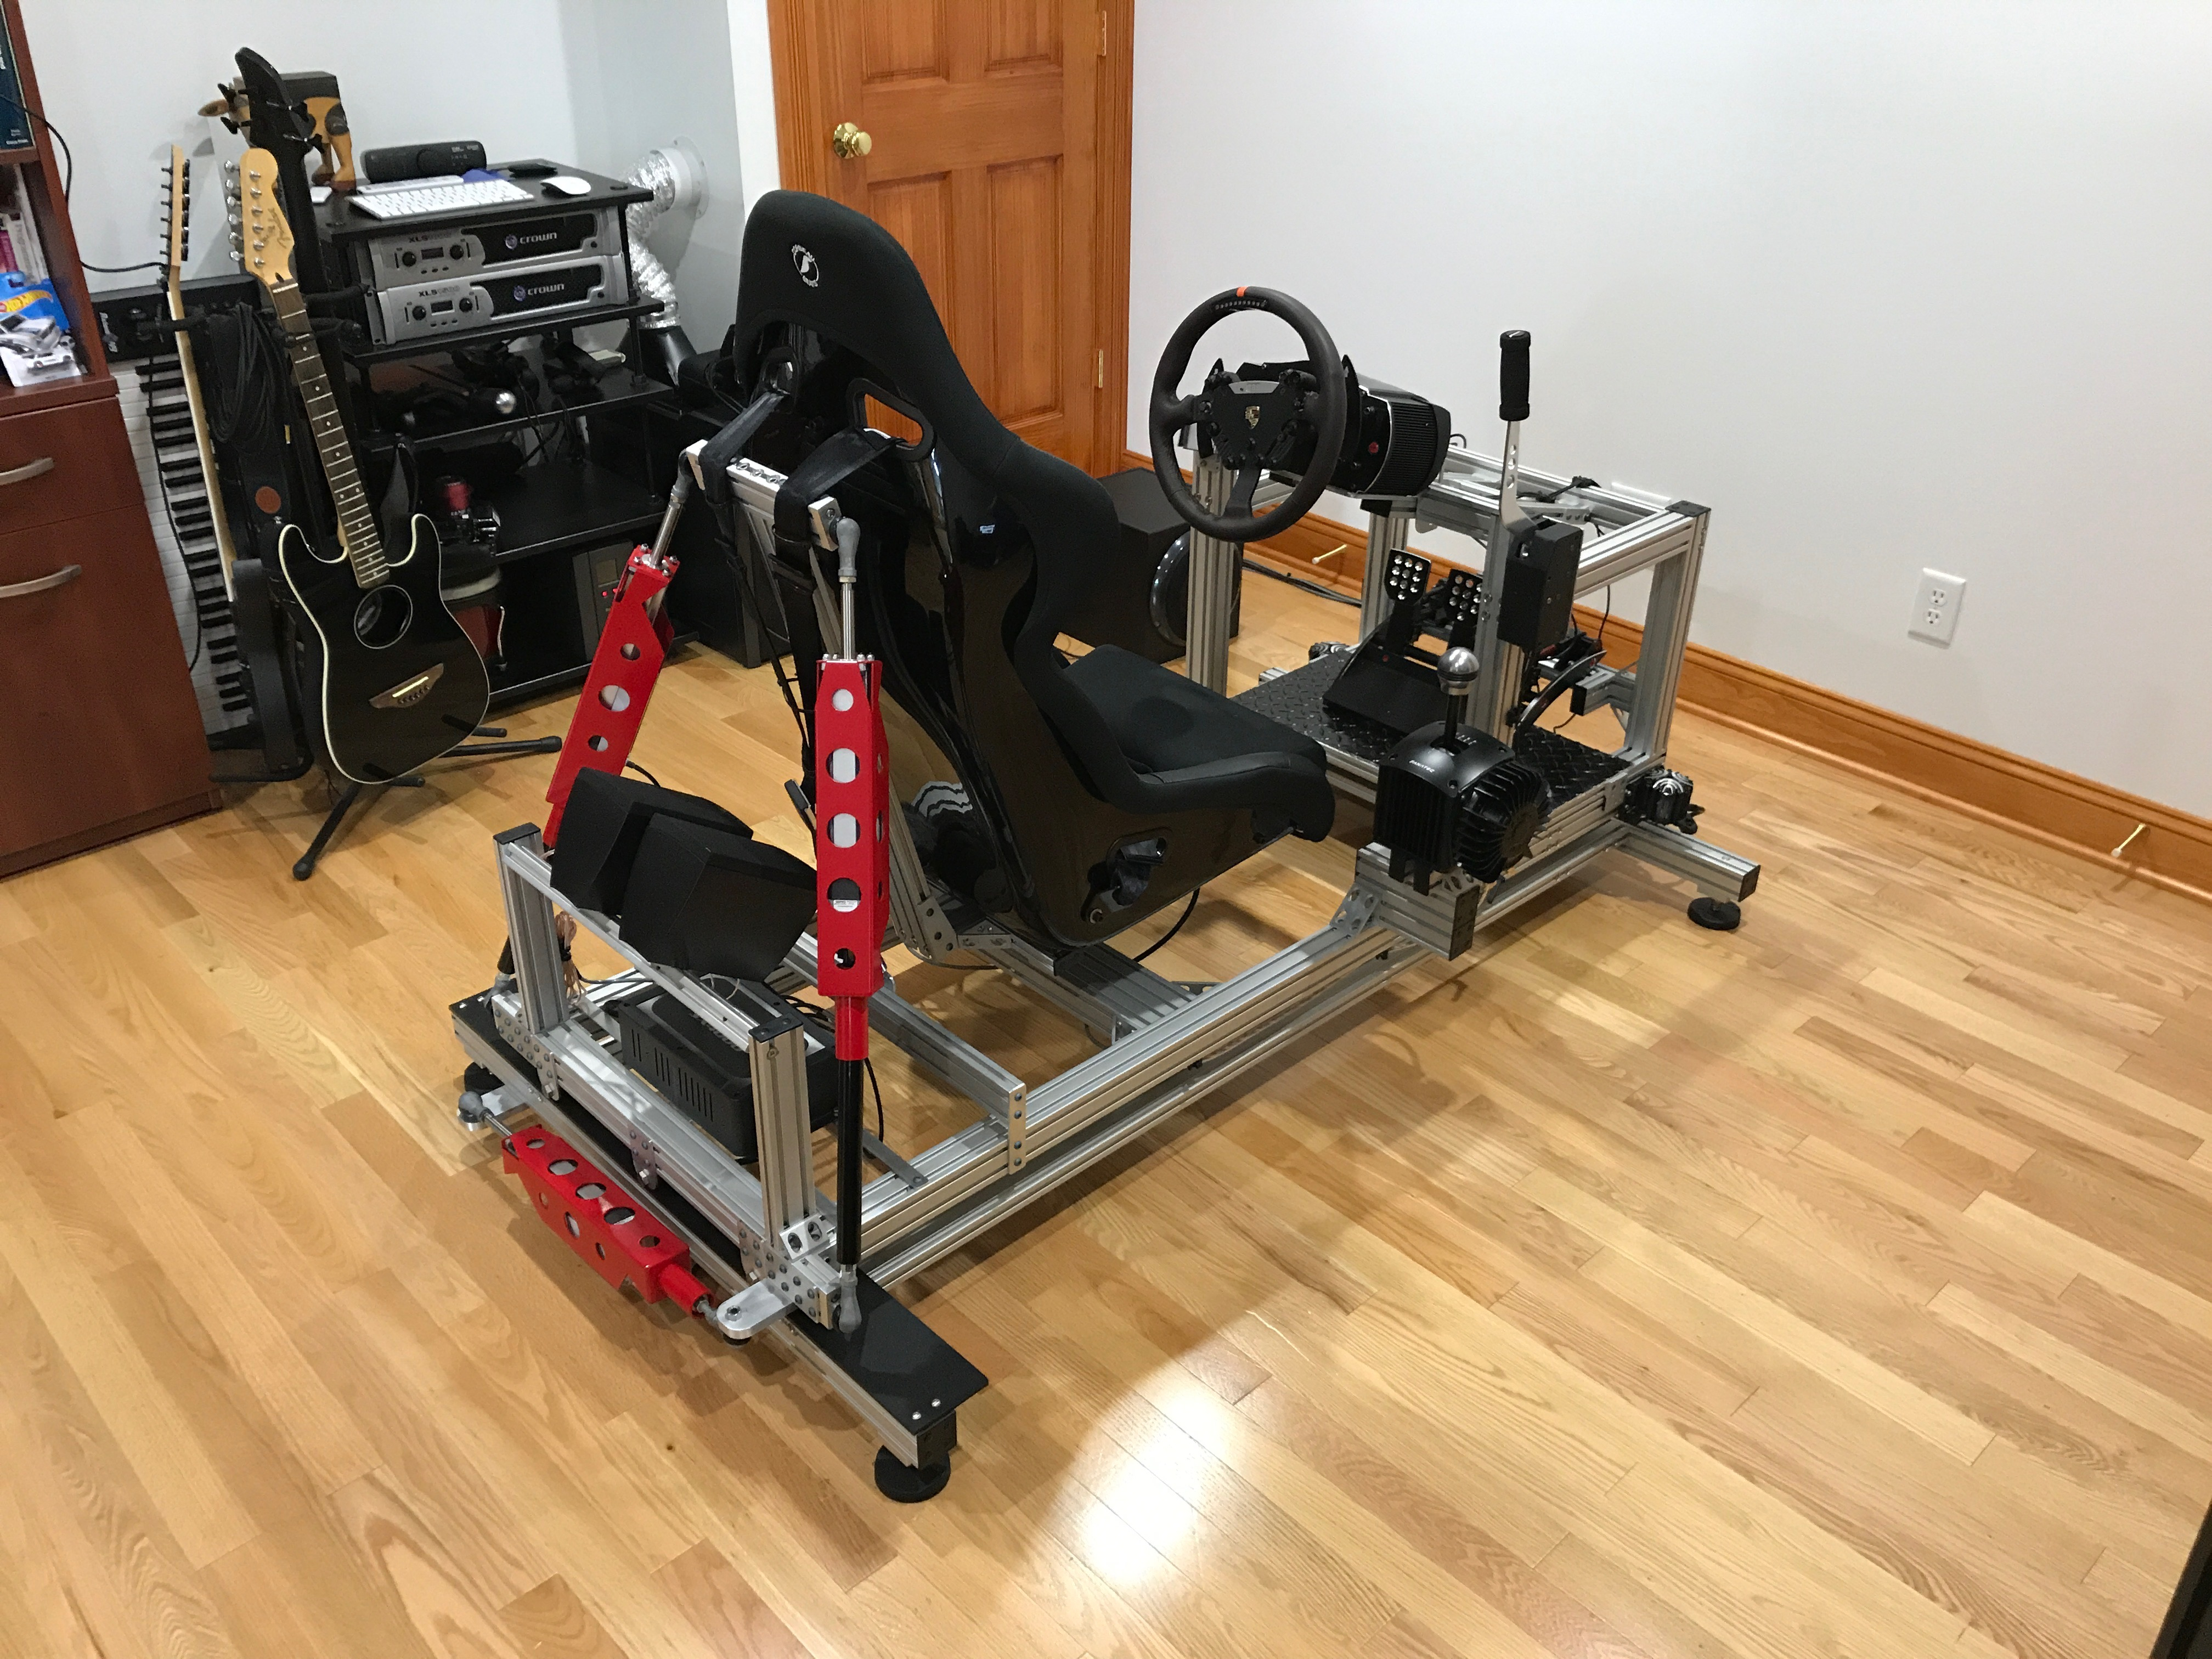 racing simulator chair plans overstock leather my sim motion rig version 2 daniel chote s project blog